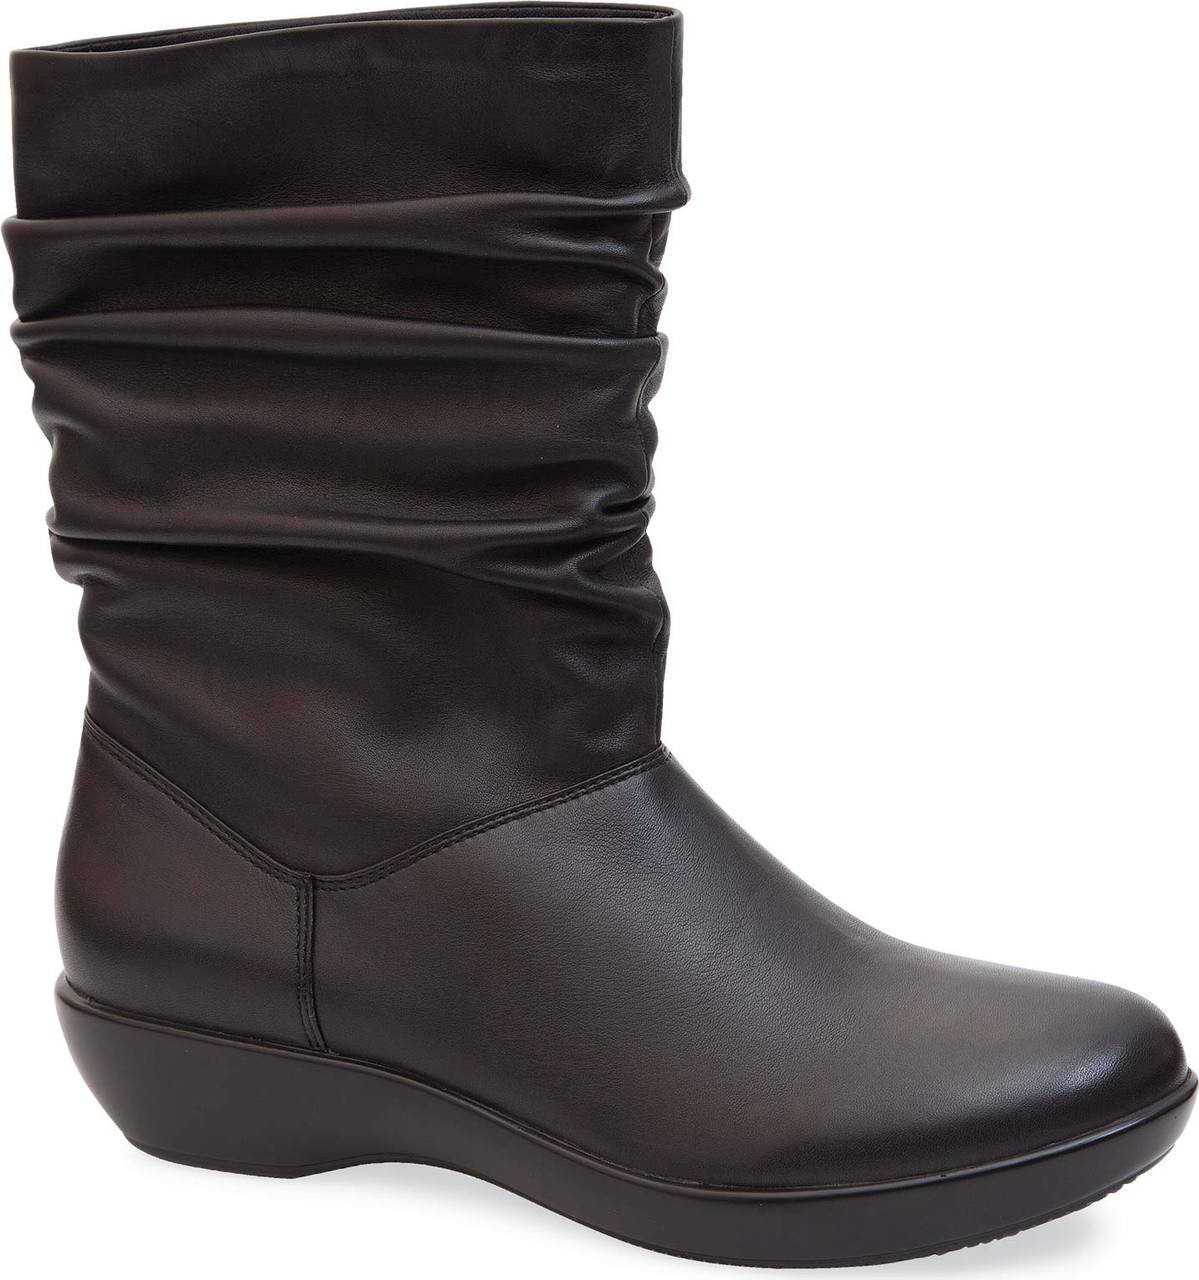 The best brands in men's dress and casual shoes, sandals, sneakers and boots at fantasiacontest.cf Eligible for free shipping and returns.